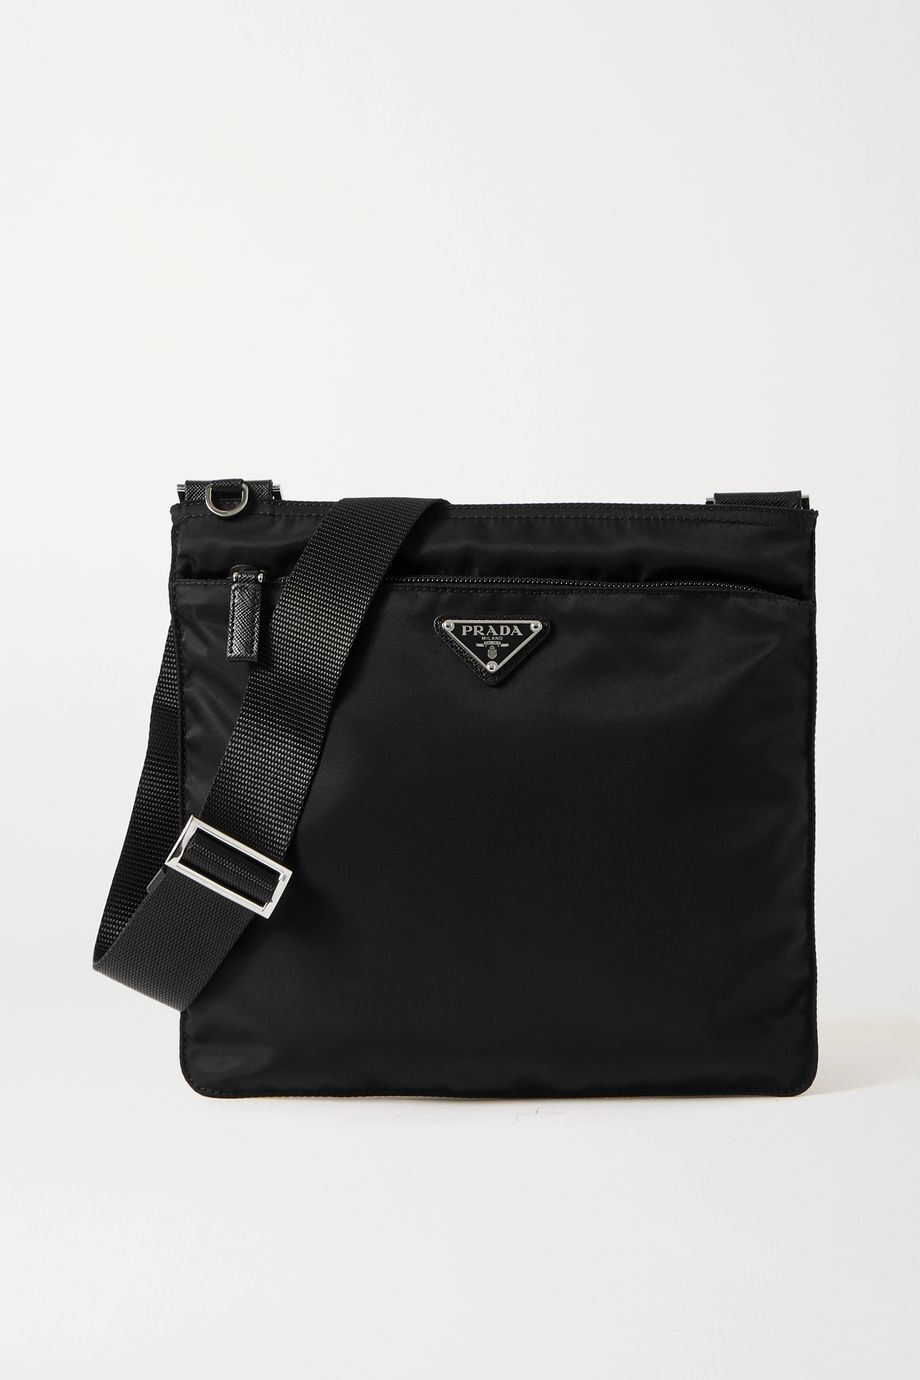 Prada Vela textured leather-trimmed nylon shoulder bag